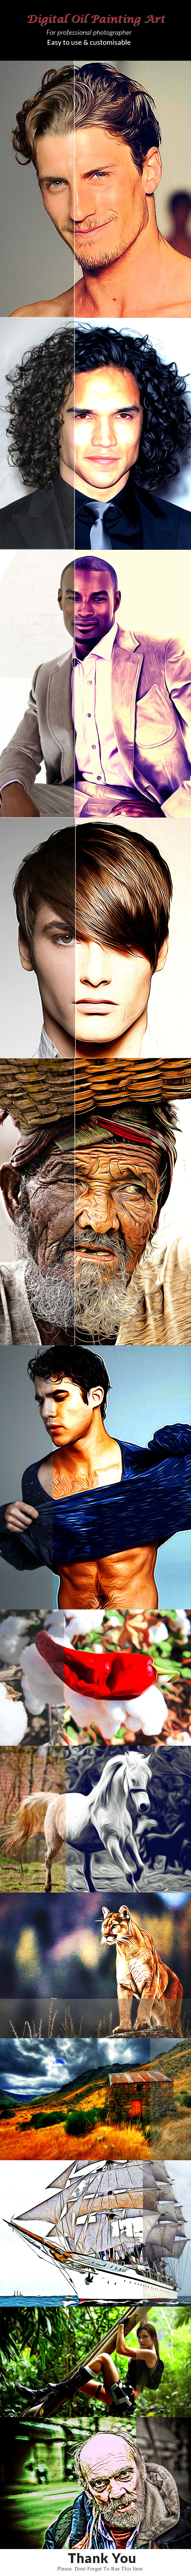 Digital Oil Painting Art - Photo Effects Actions